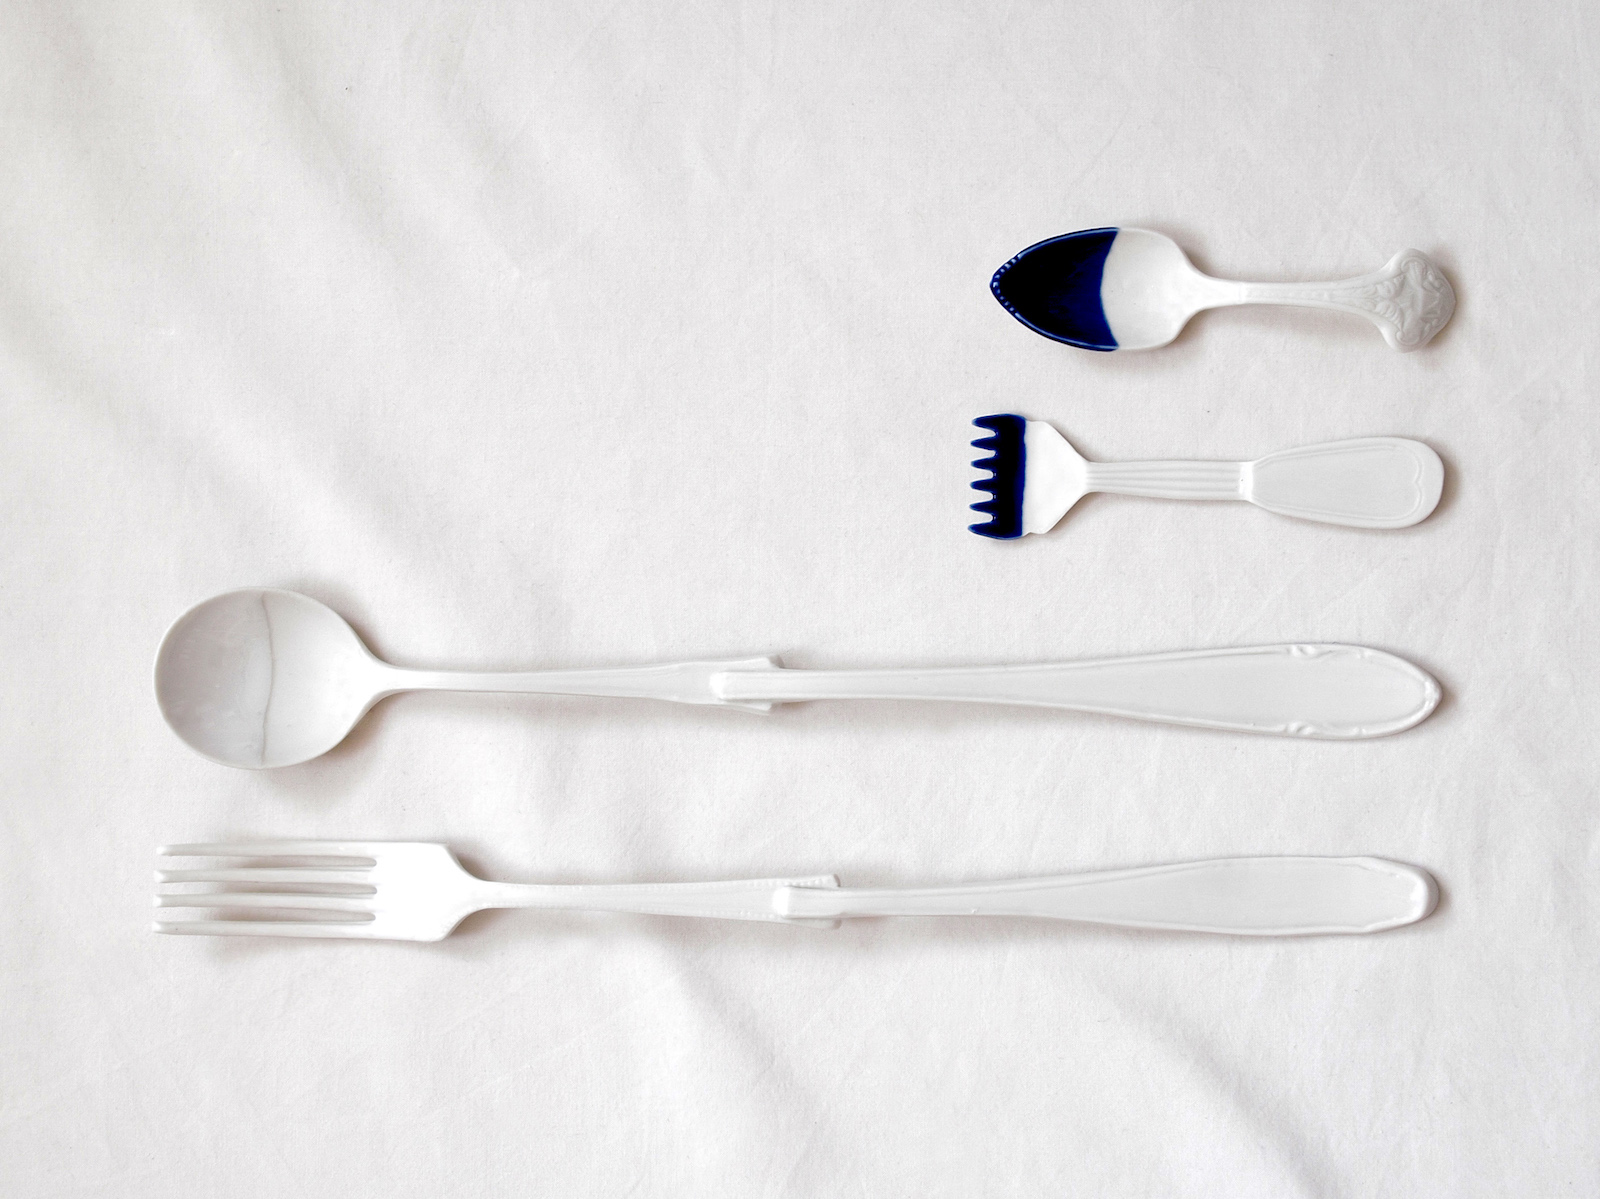 Tastemaker Cutlery by Renee Boute